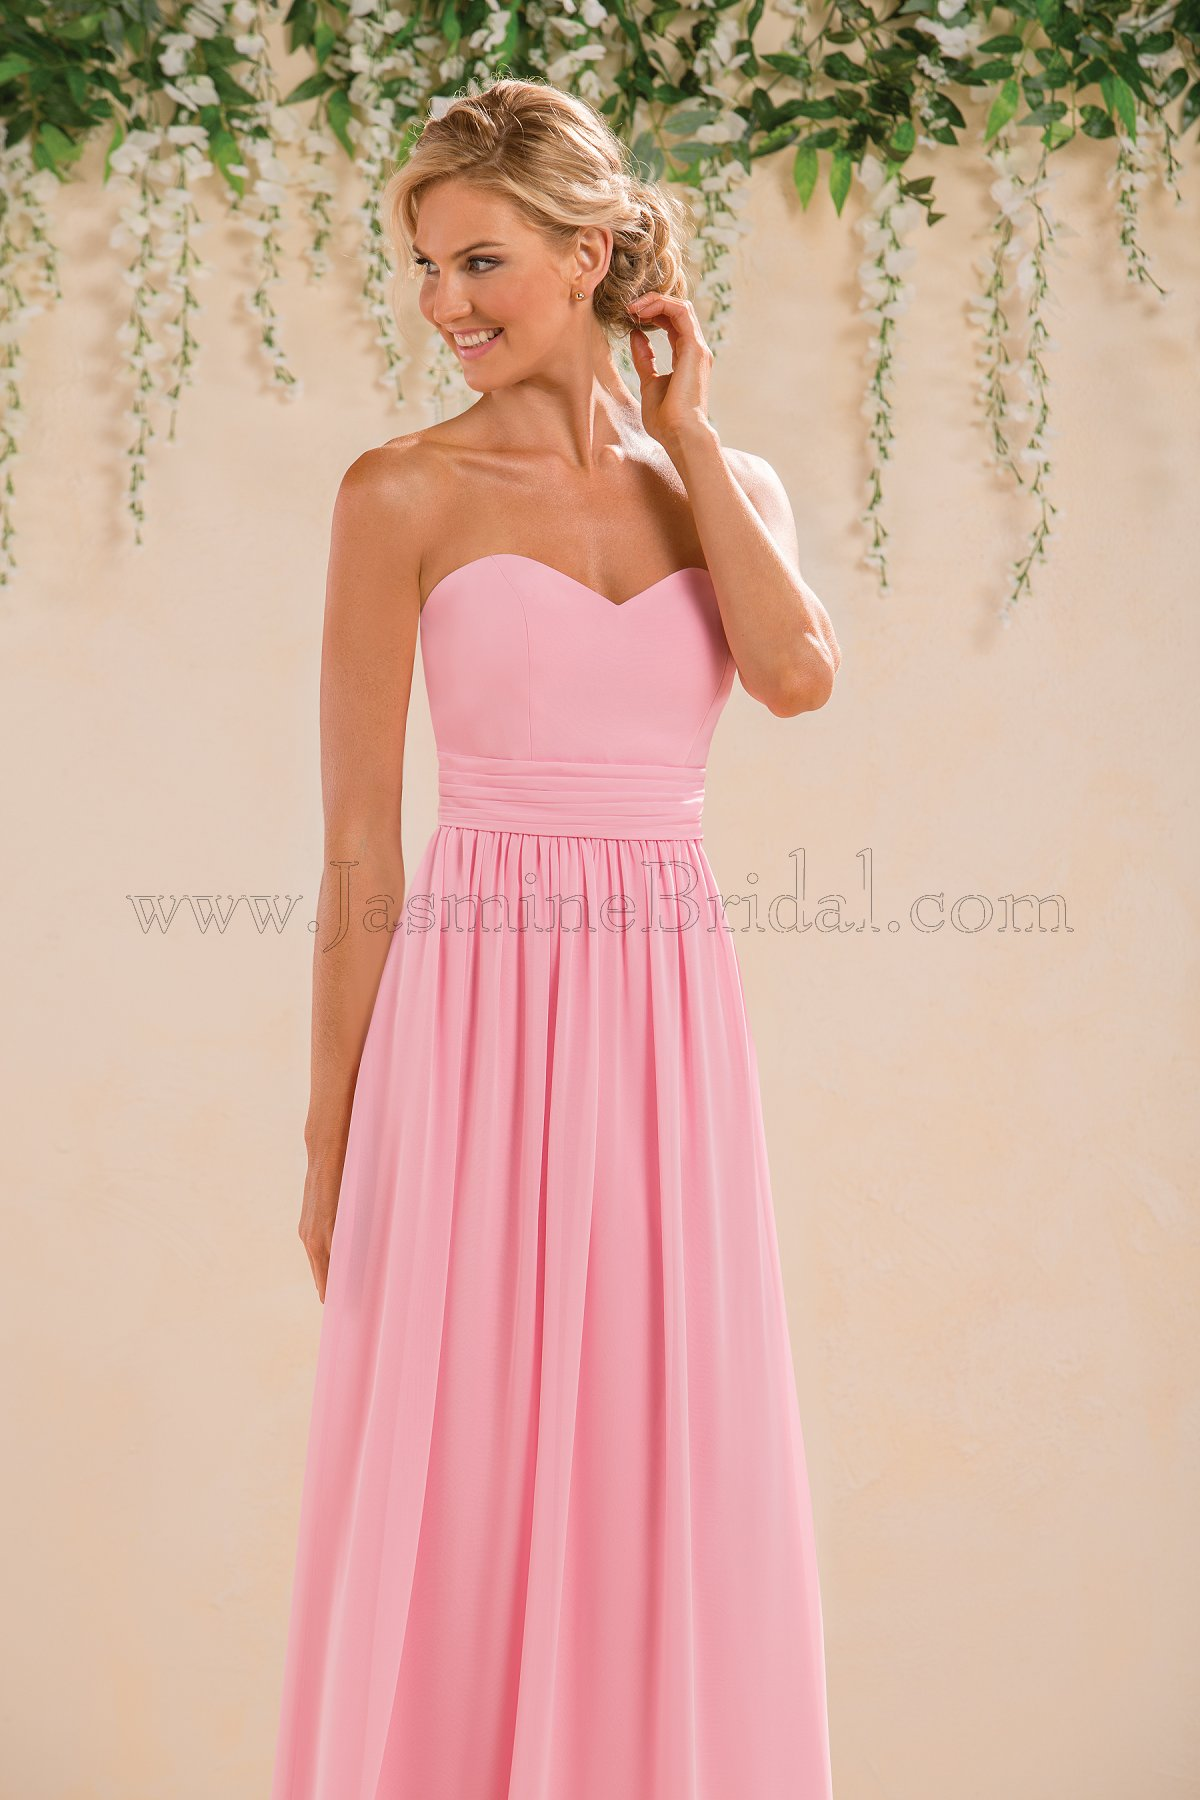 bridesmaid-dresses-B183017-1